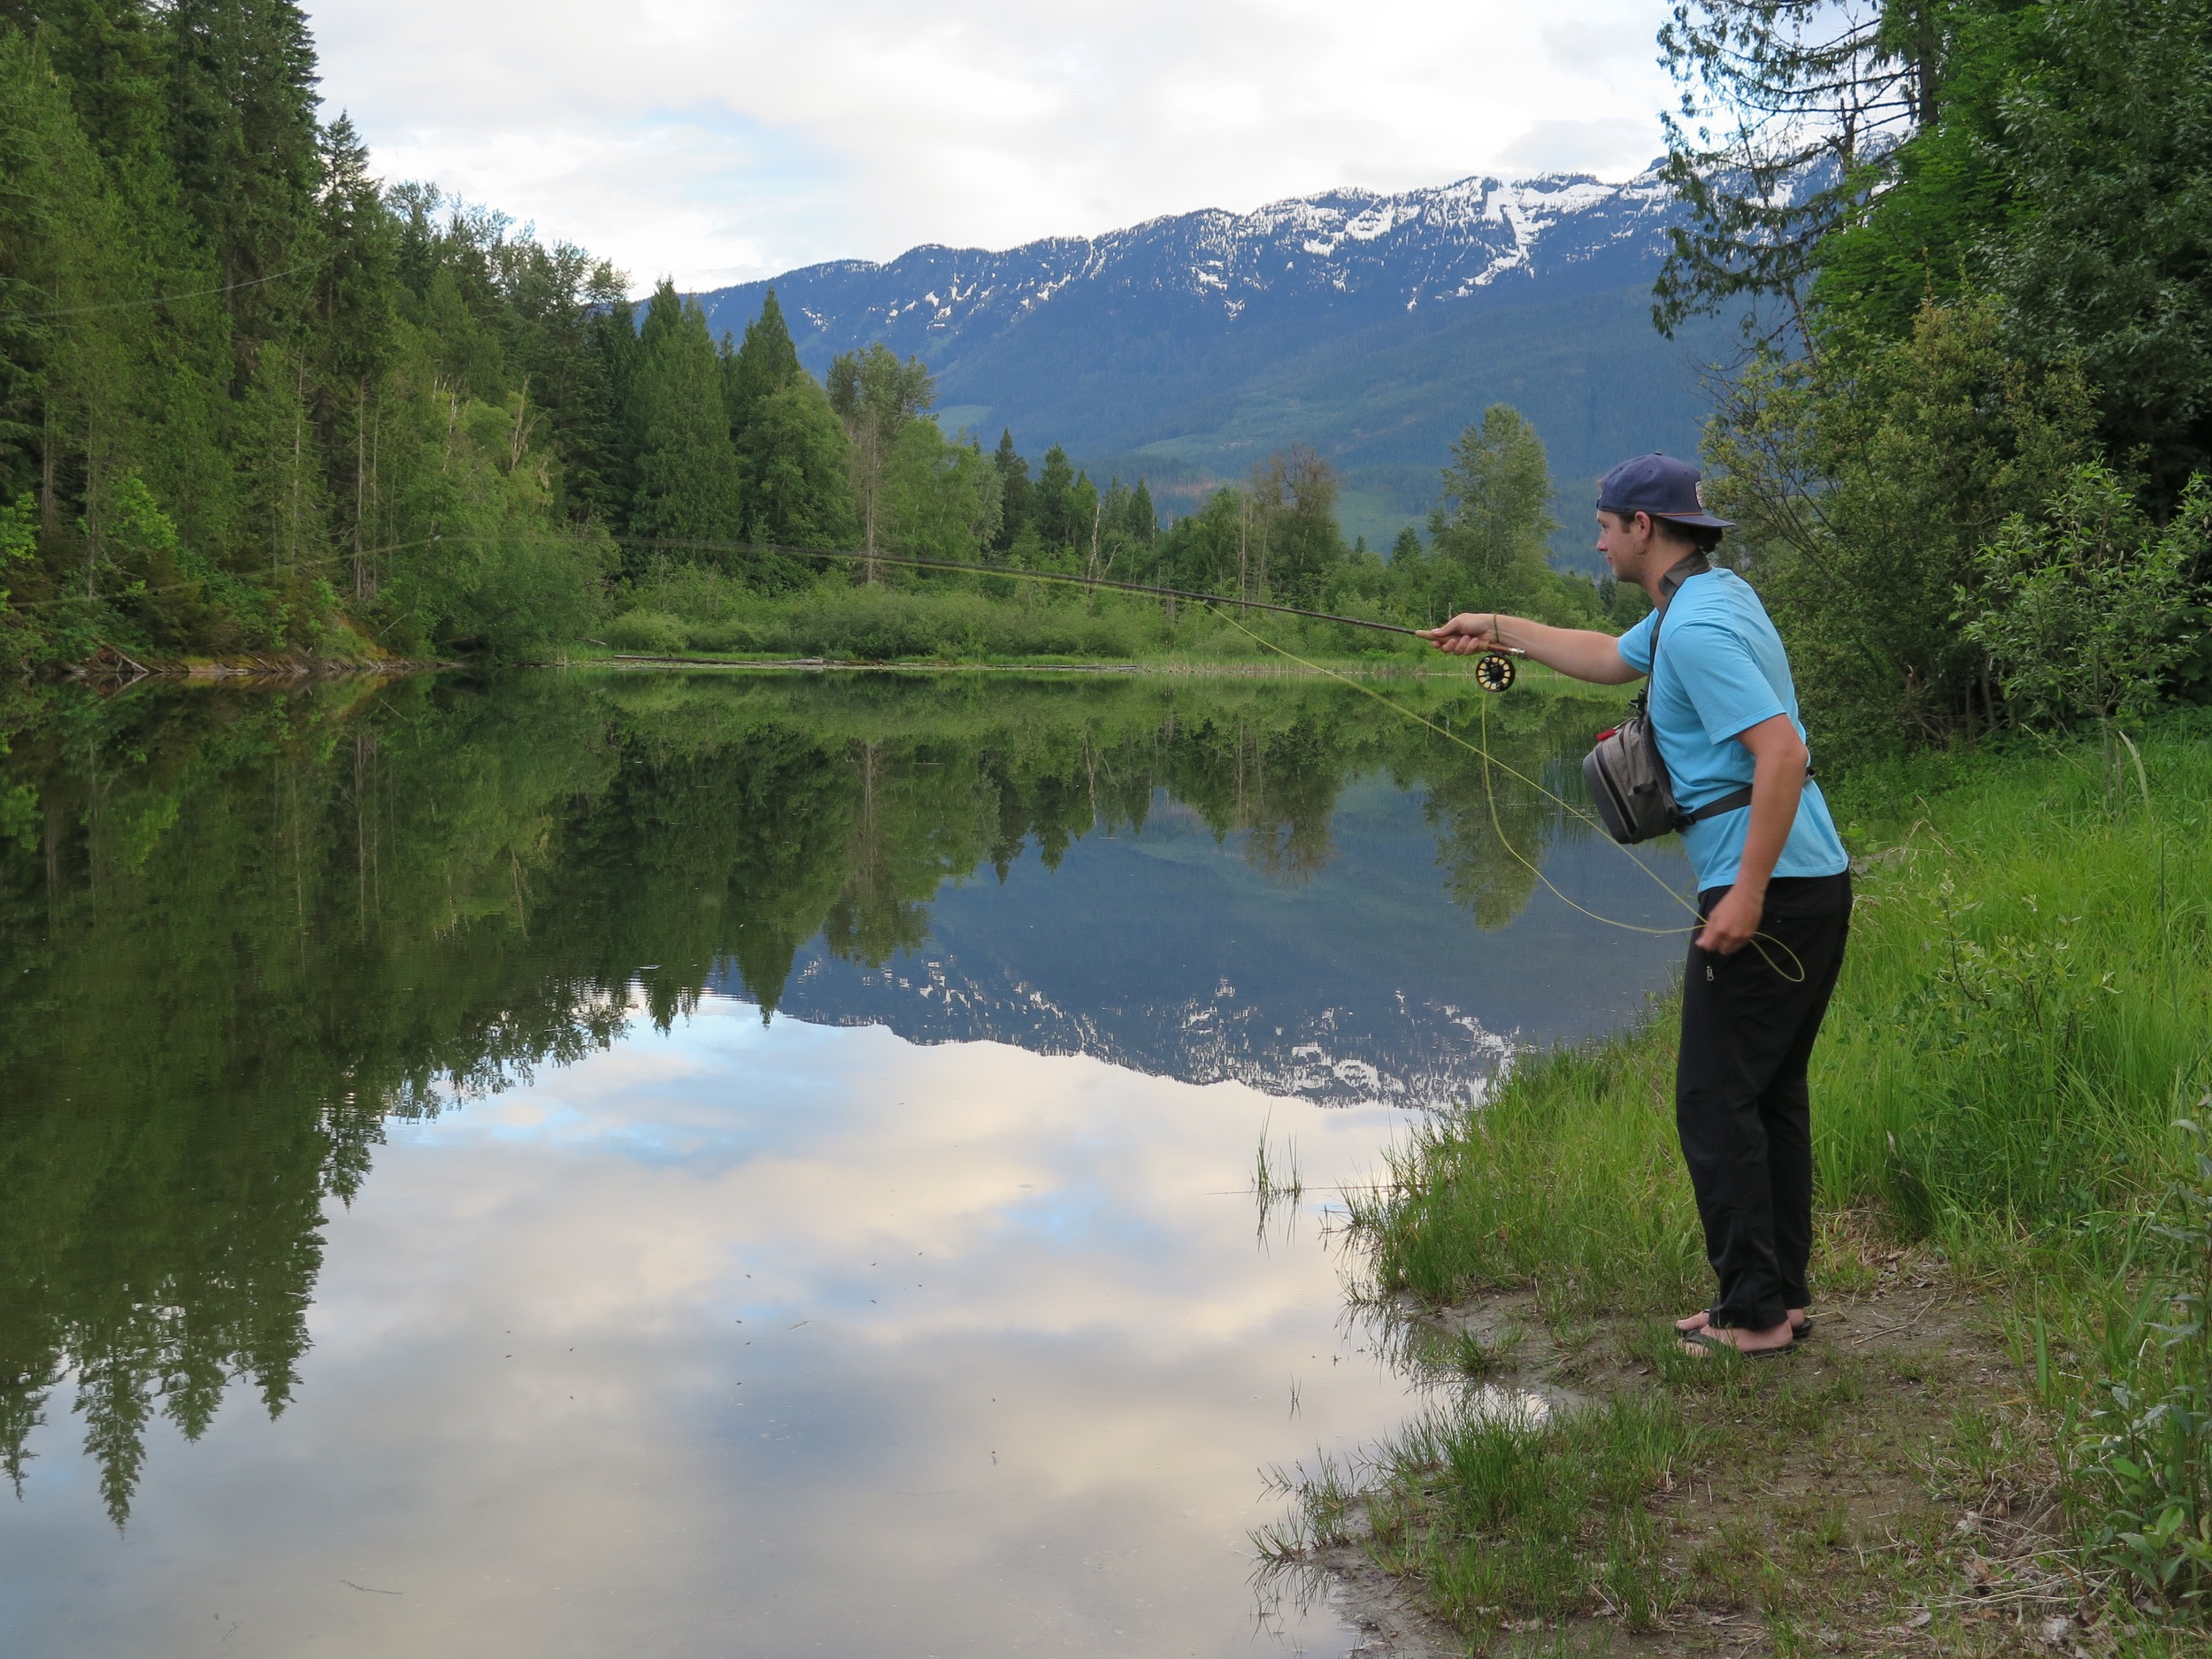 Jeff fishing in Revelstoke